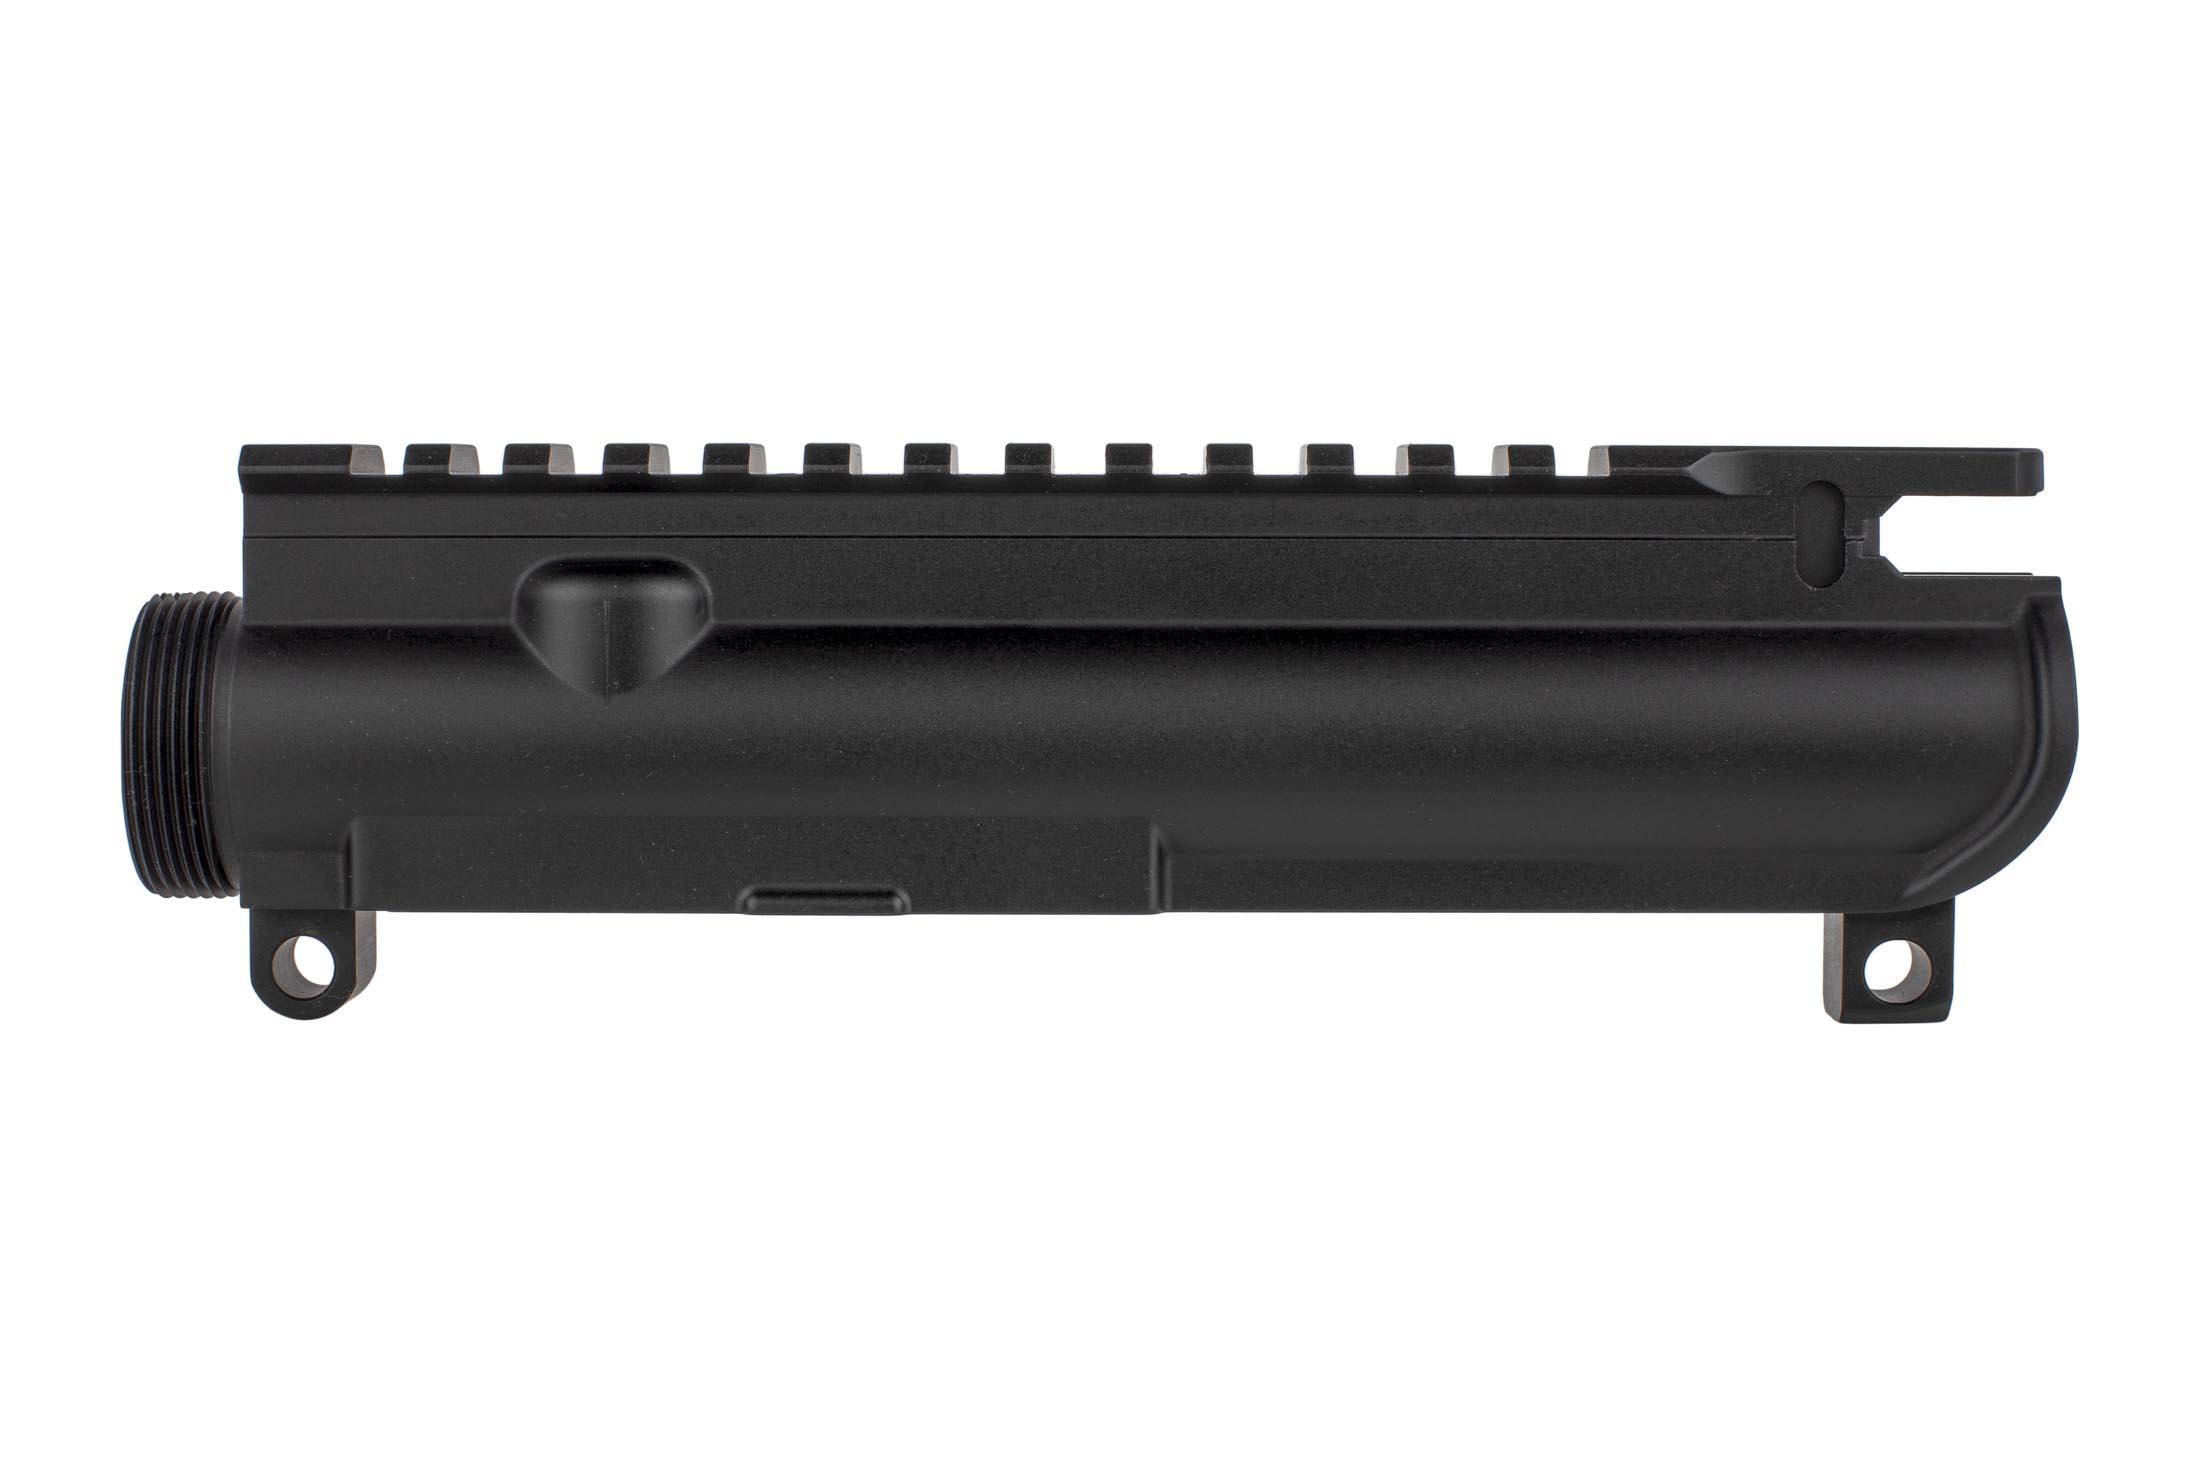 Aero Precision slickside MIL-SPEC AR15 upper receiver features a proper M1913 flat-top compatible with your favorite sights and optics